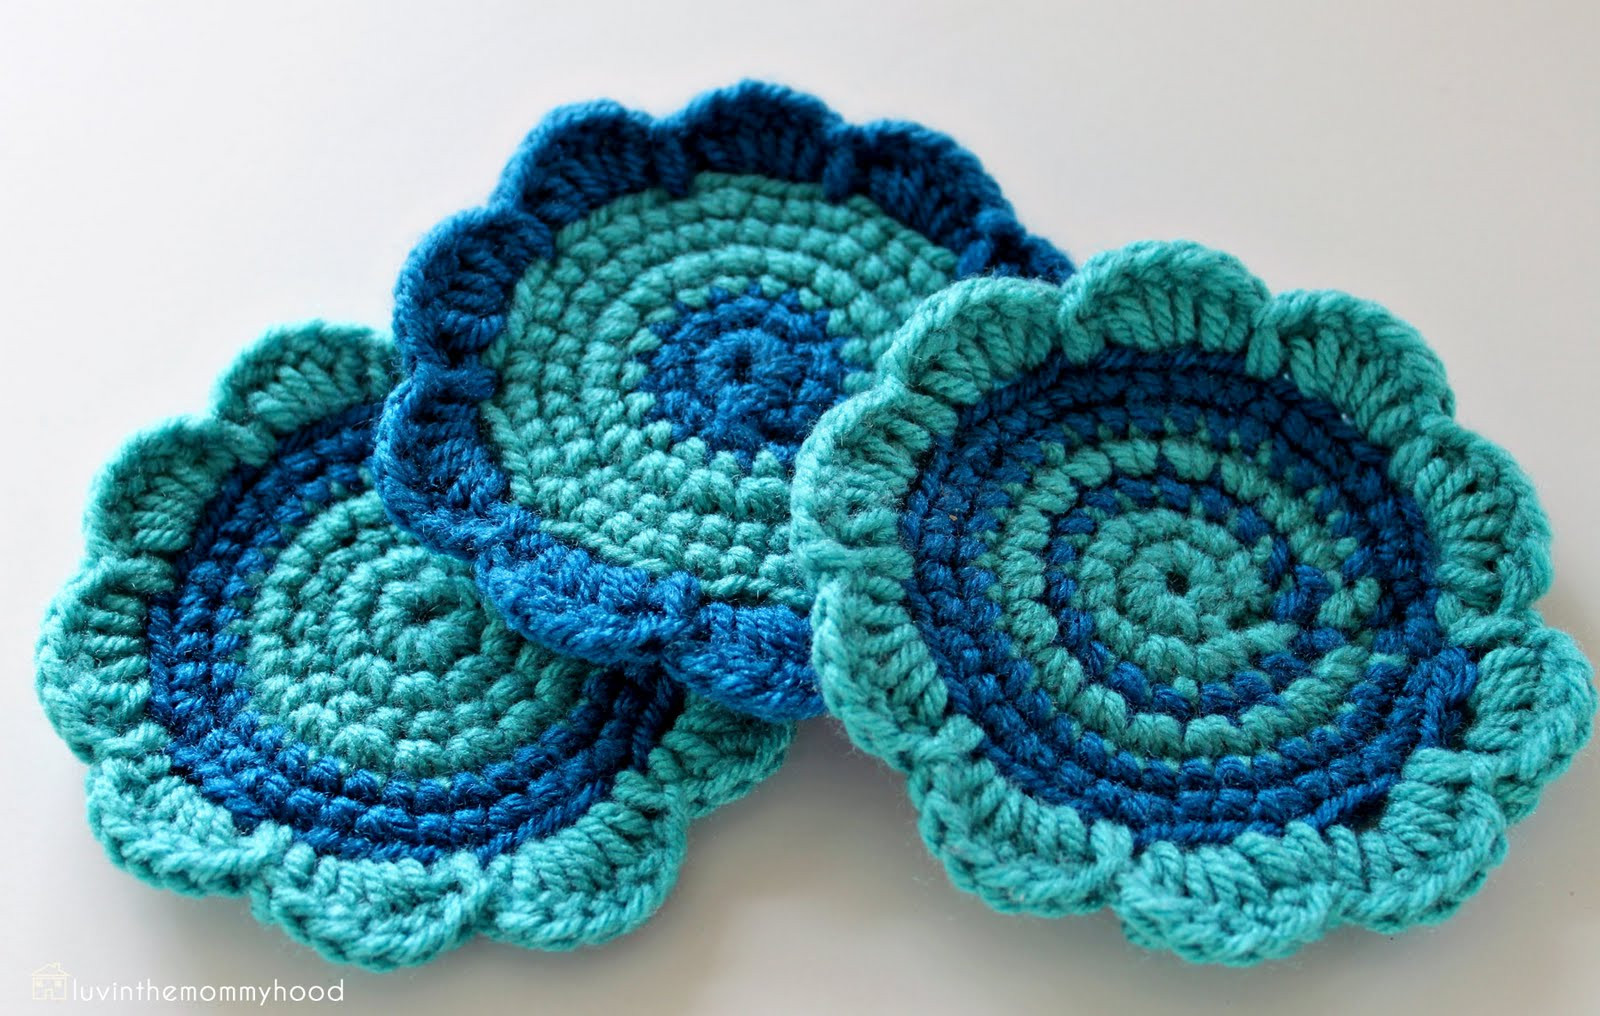 Crochet Tutorial Elegant Versus Jardain Crochet Coaster Tutorial with Guest Of Wonderful 48 Ideas Crochet Tutorial